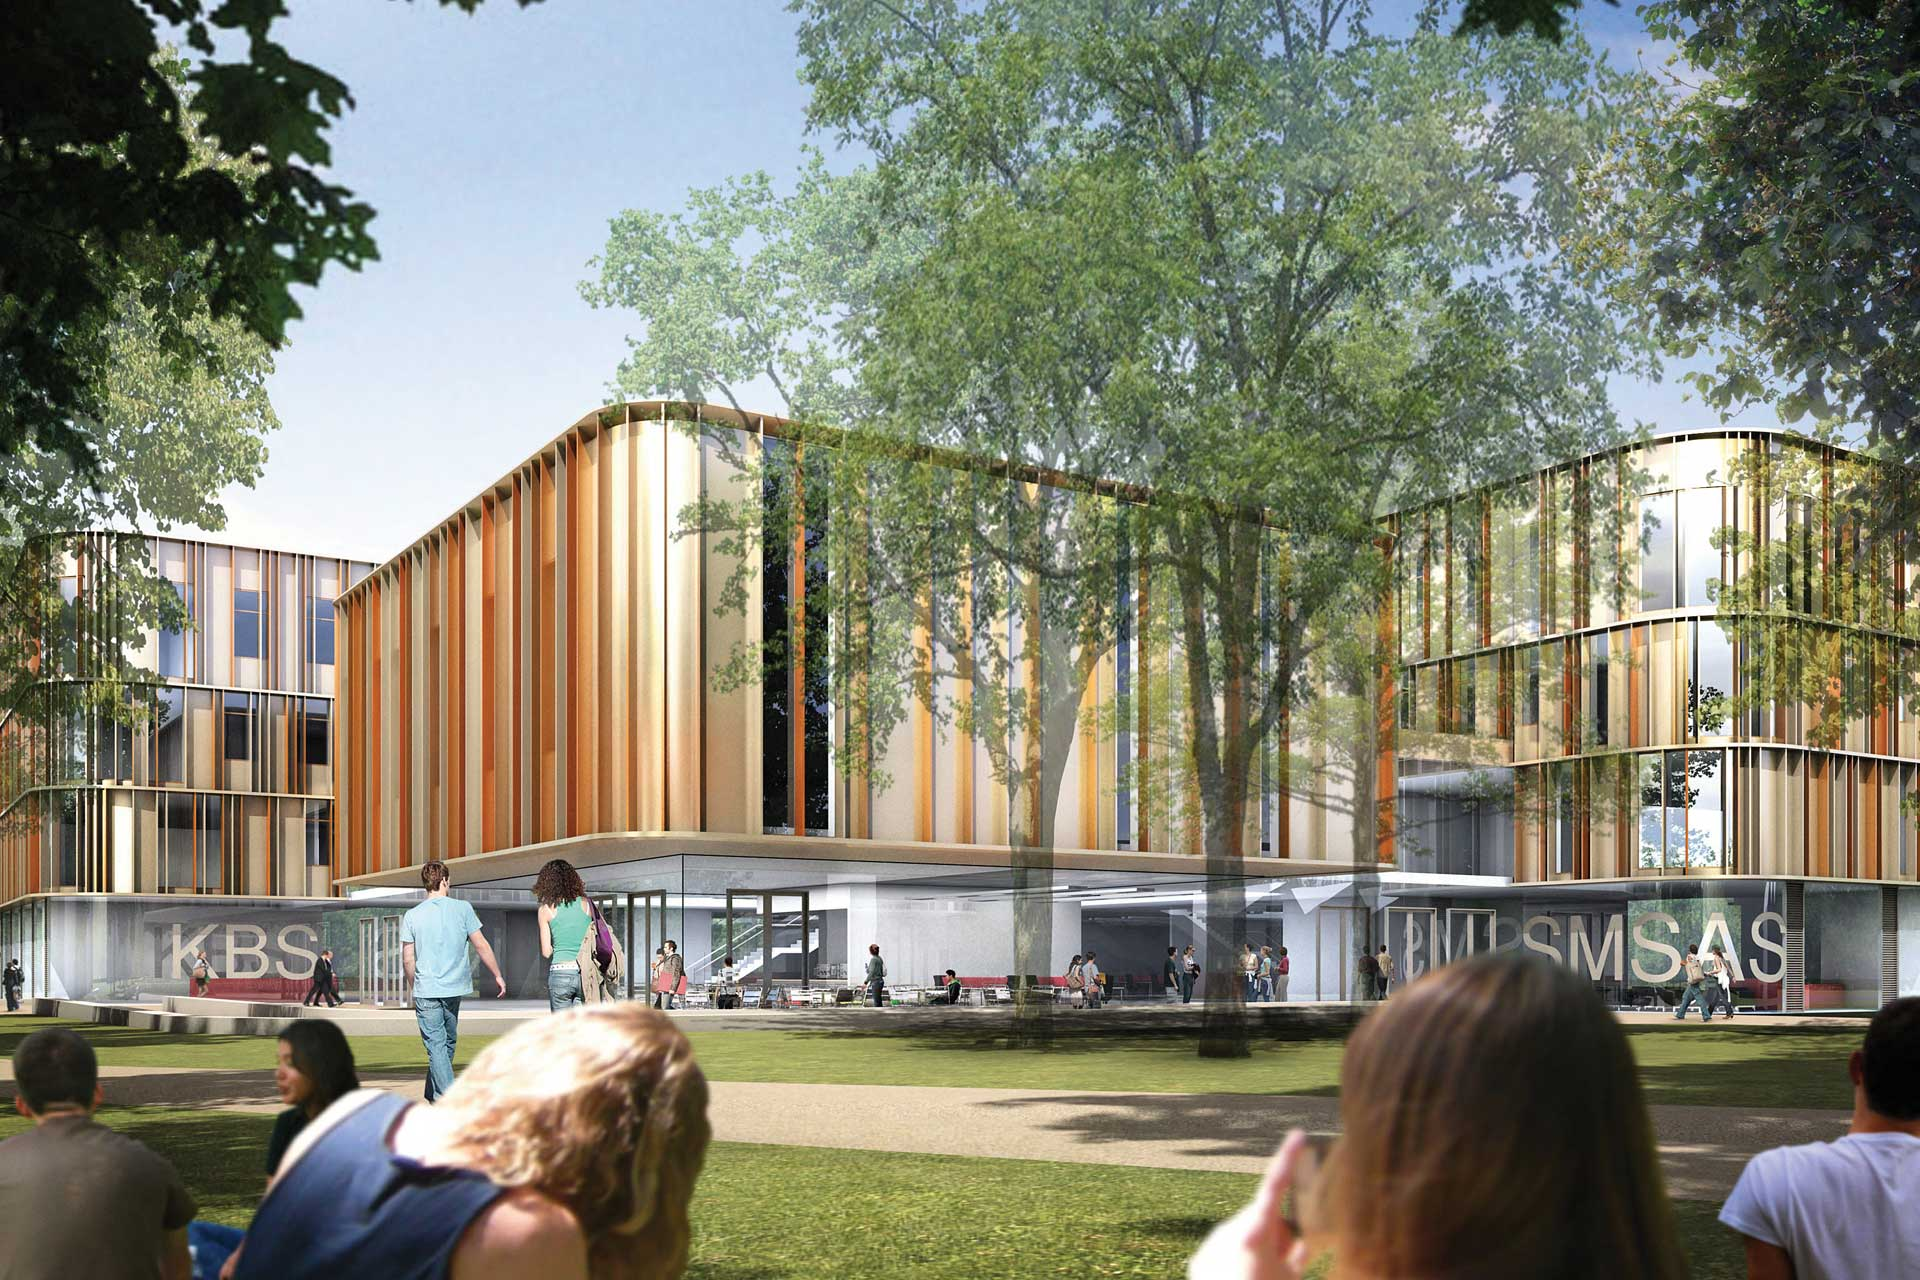 New Sibson Building for the Kent Business School